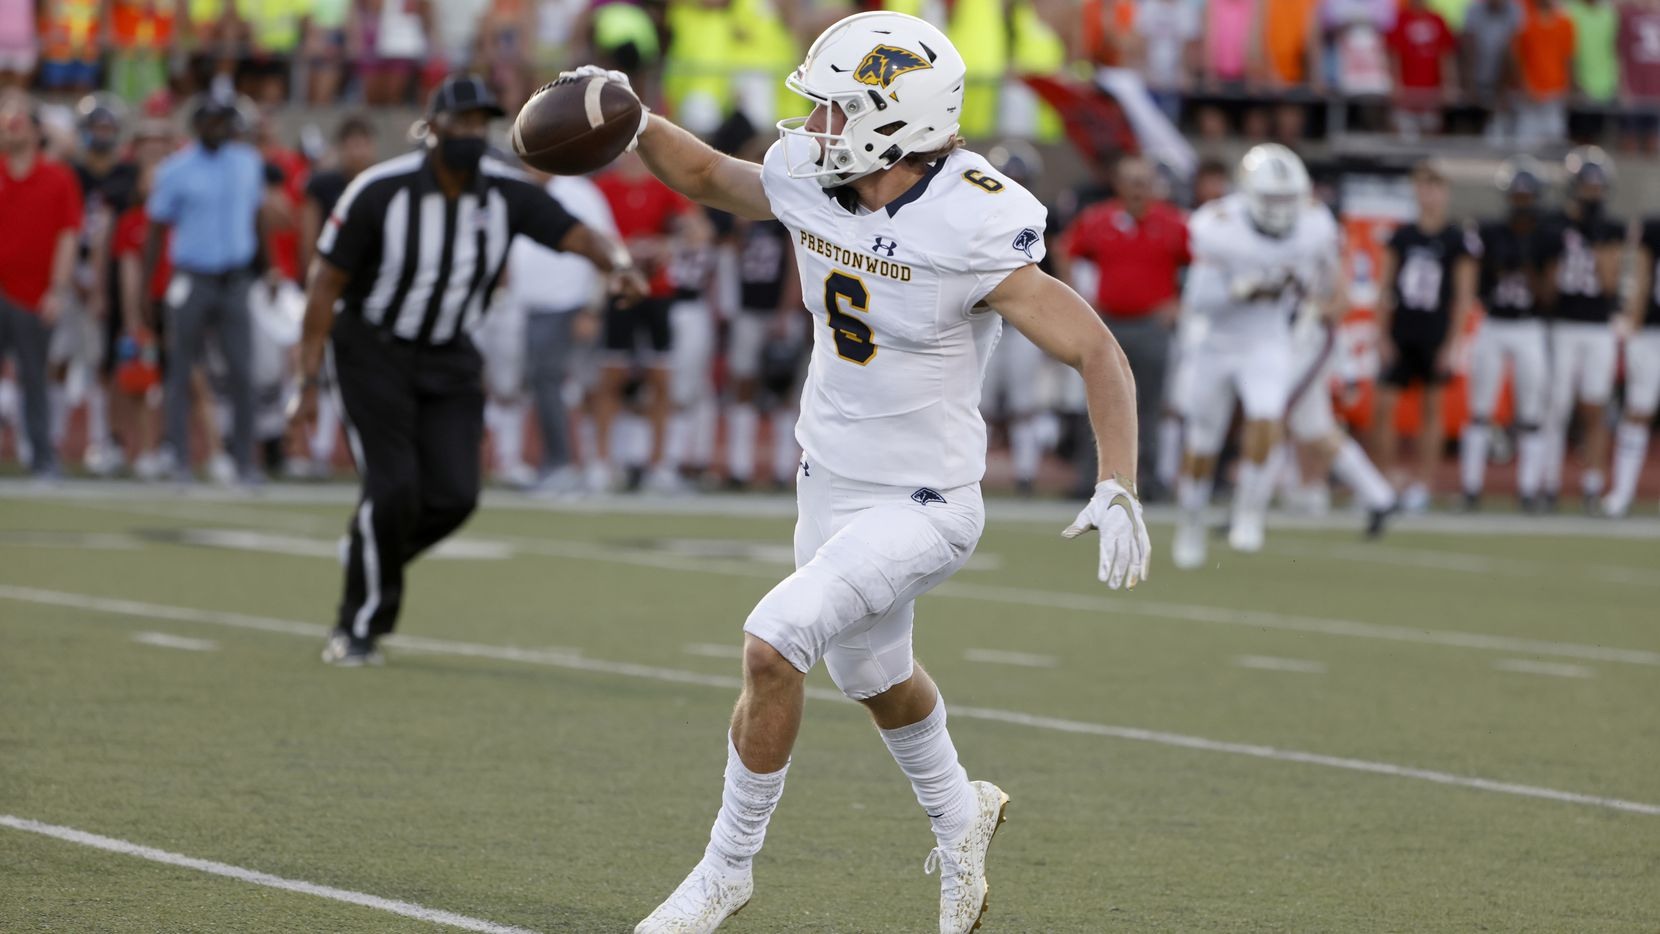 Prestonwood Christian Academy defender Tyler Chambers (6) celebrates his interception against Coppell during a high school football game in Coppell, Texas on Friday, Sept. 03, 2021.